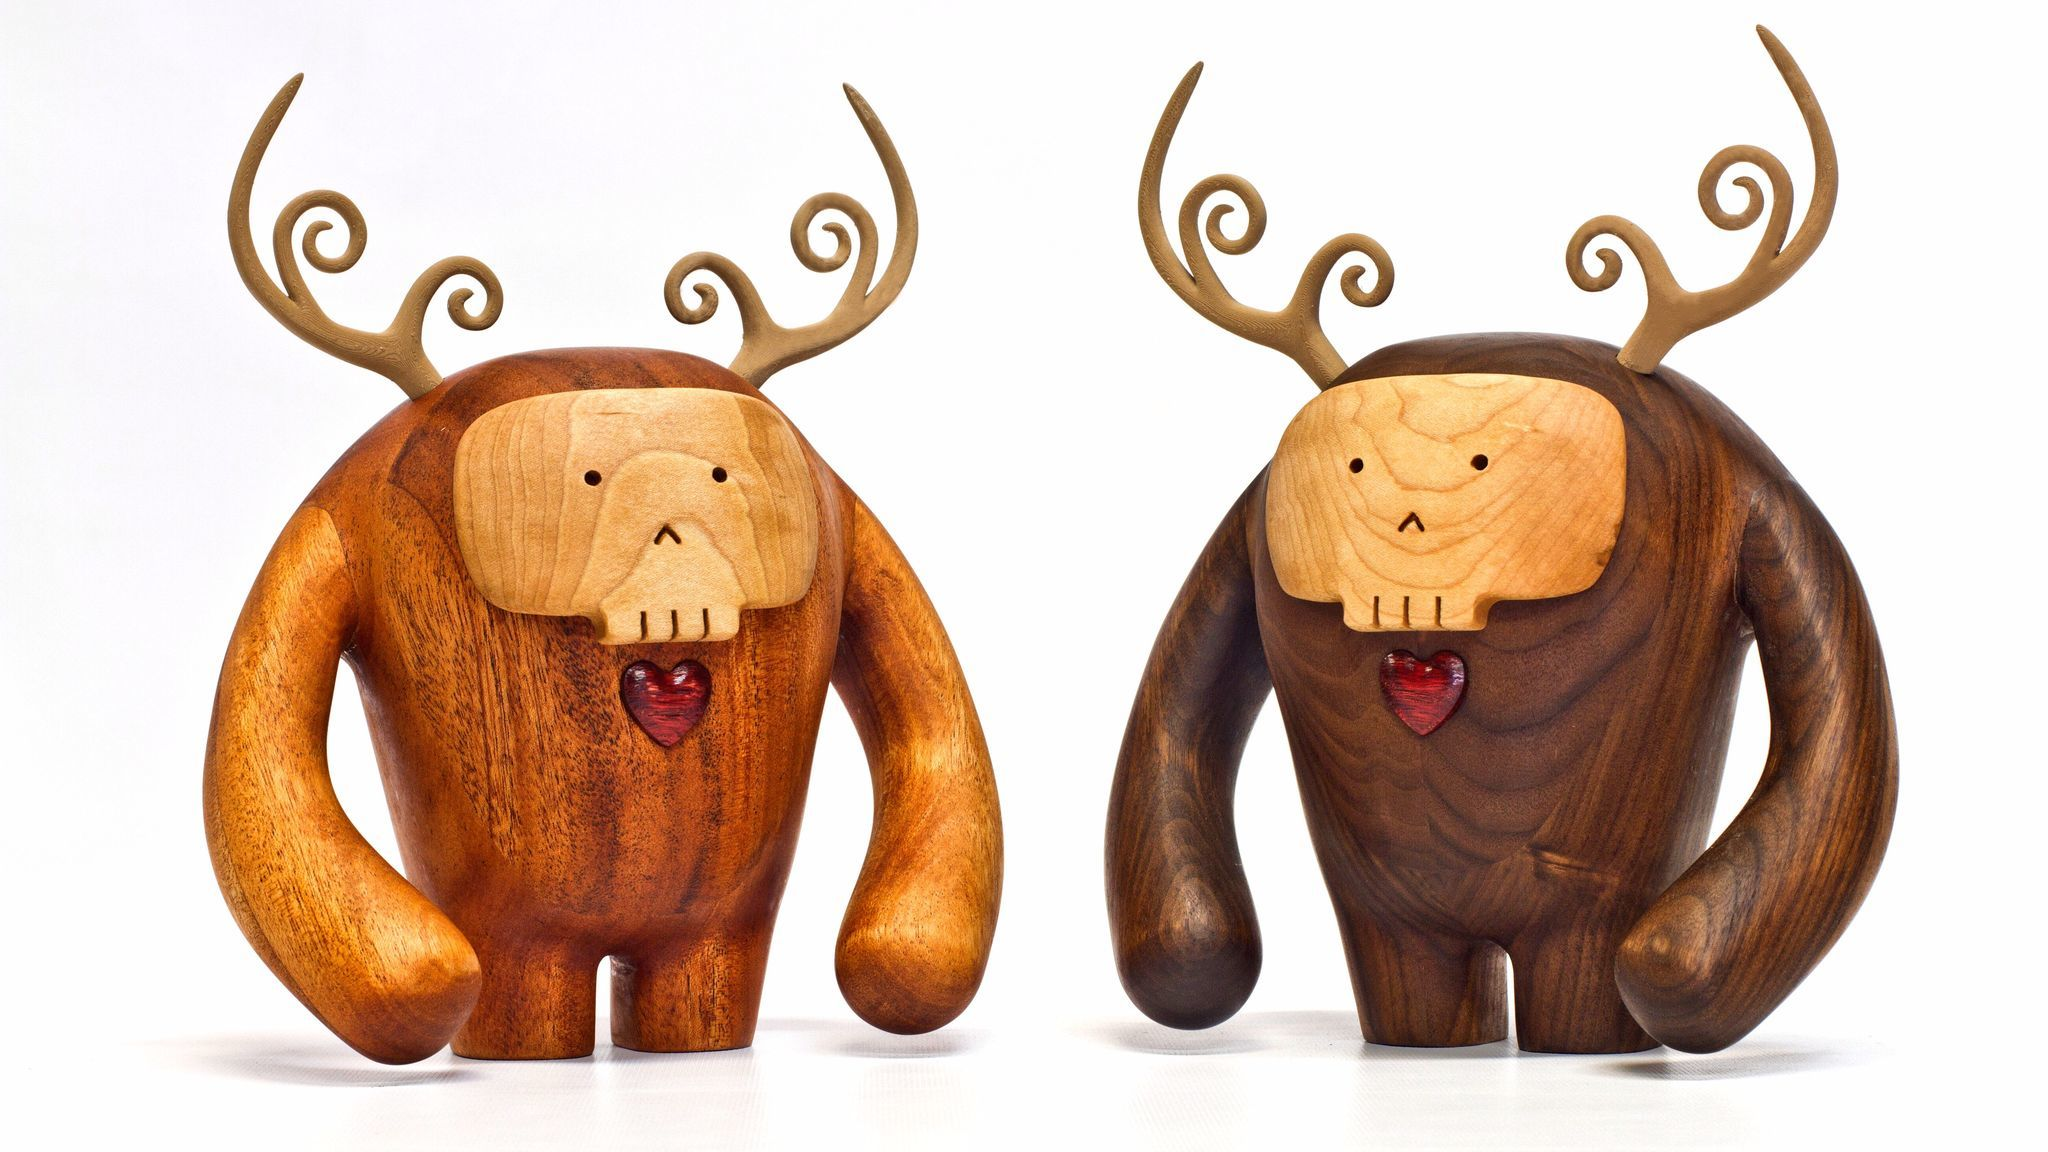 Wooda, a designer, manufacturer, and online retailer of on-trend furniture and wood-based décor, today unveiled Los Hermanos Calavera. The all-wood sculptures are handcrafted to add smiles to home offices, beautify bookcases or add an eclectic touch to any space you welcome them.Photo credit: Wooda